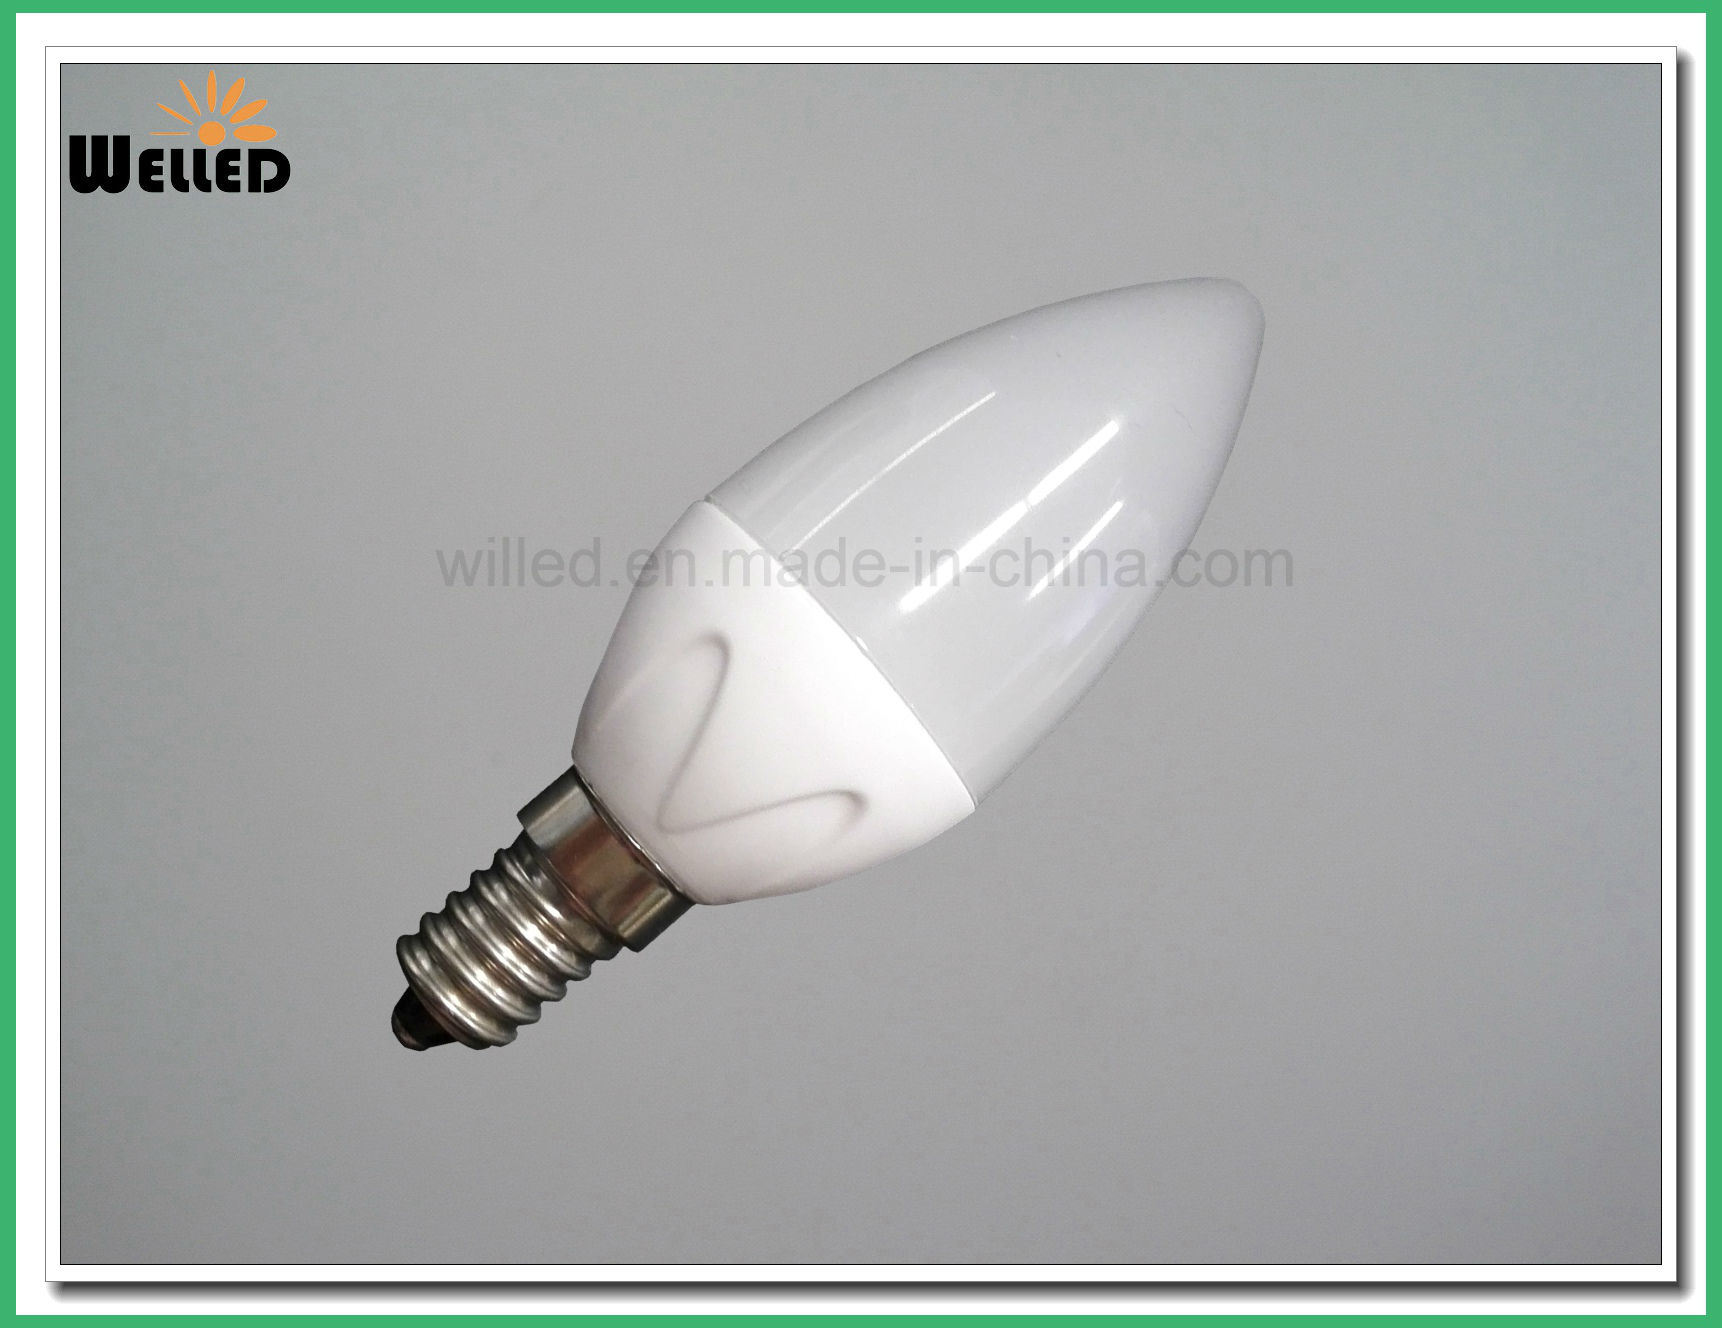 Ceramic C37 LED Candle Light 5W Dimmable LED Candle Lamp 5W 80ra 400lm E14 B27 B22